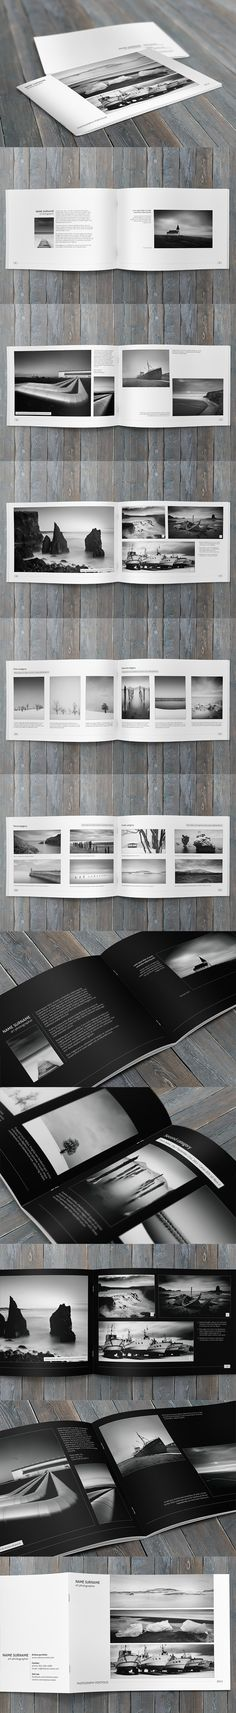 Minimalfolio Photography Portfolio A4 Brochure by Przemyslaw S, via Behance